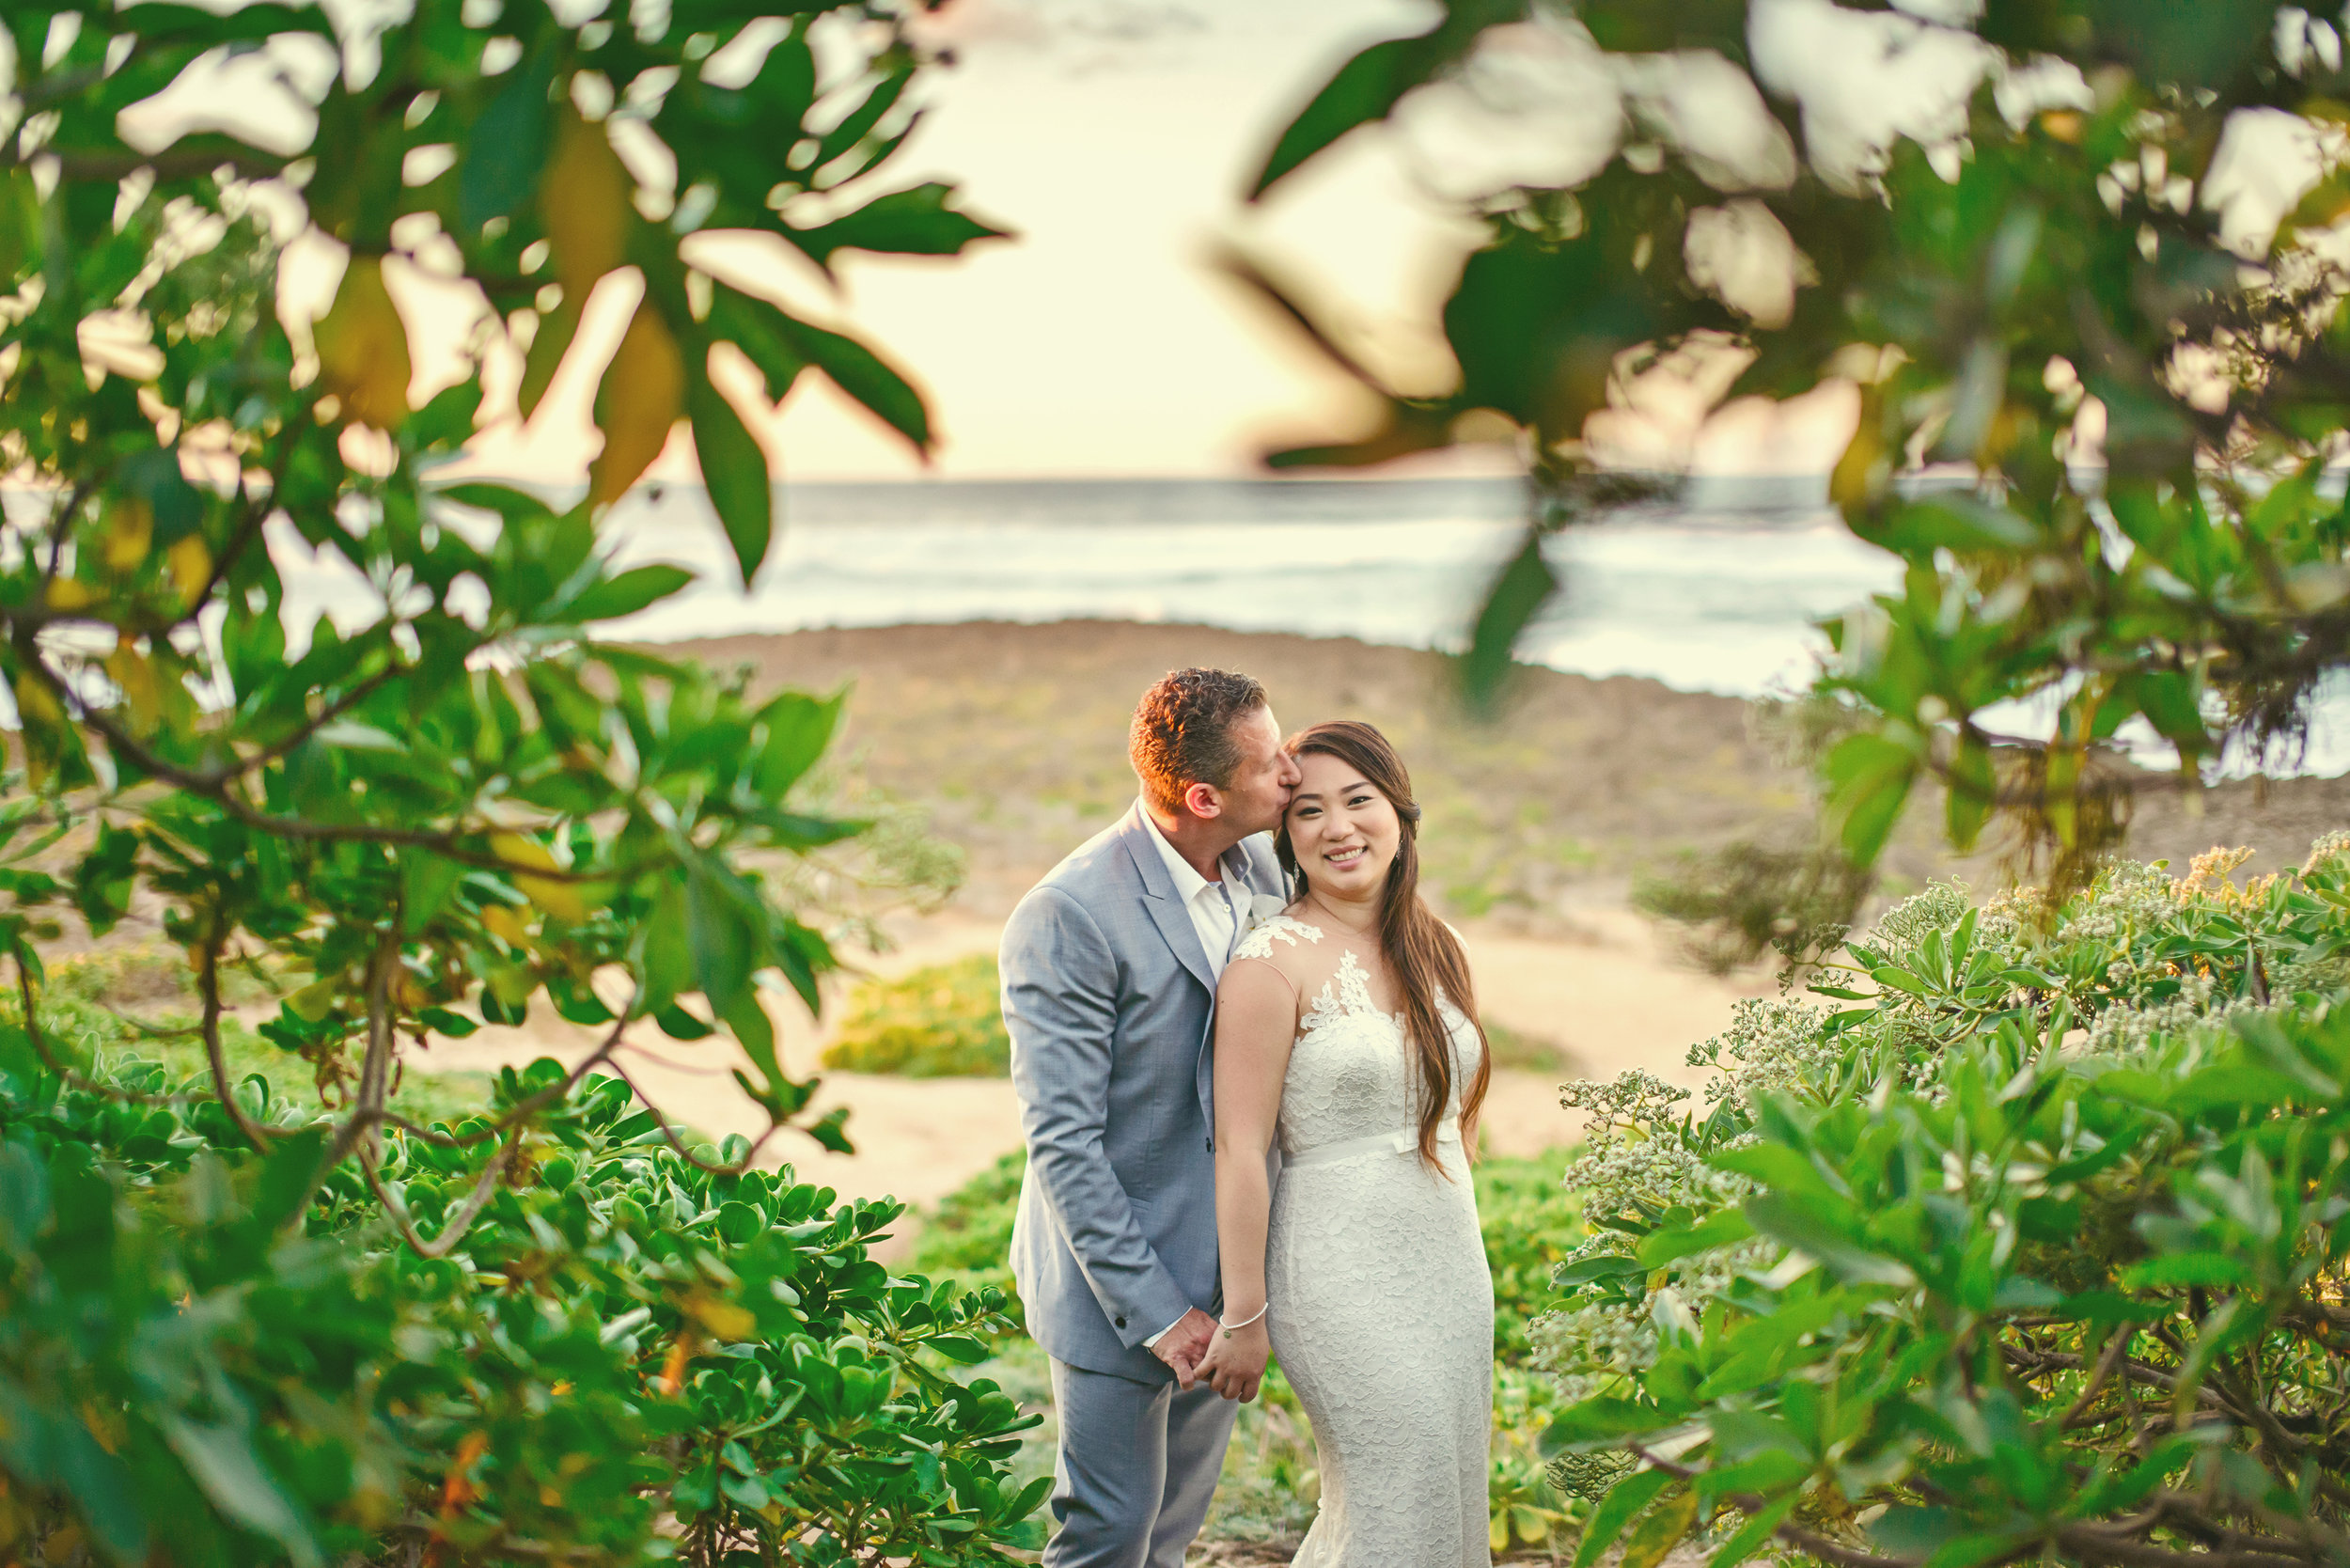 turtle bay resort wedding north shore oahu stephen ludwig photography- terry and isabel (17).jpg